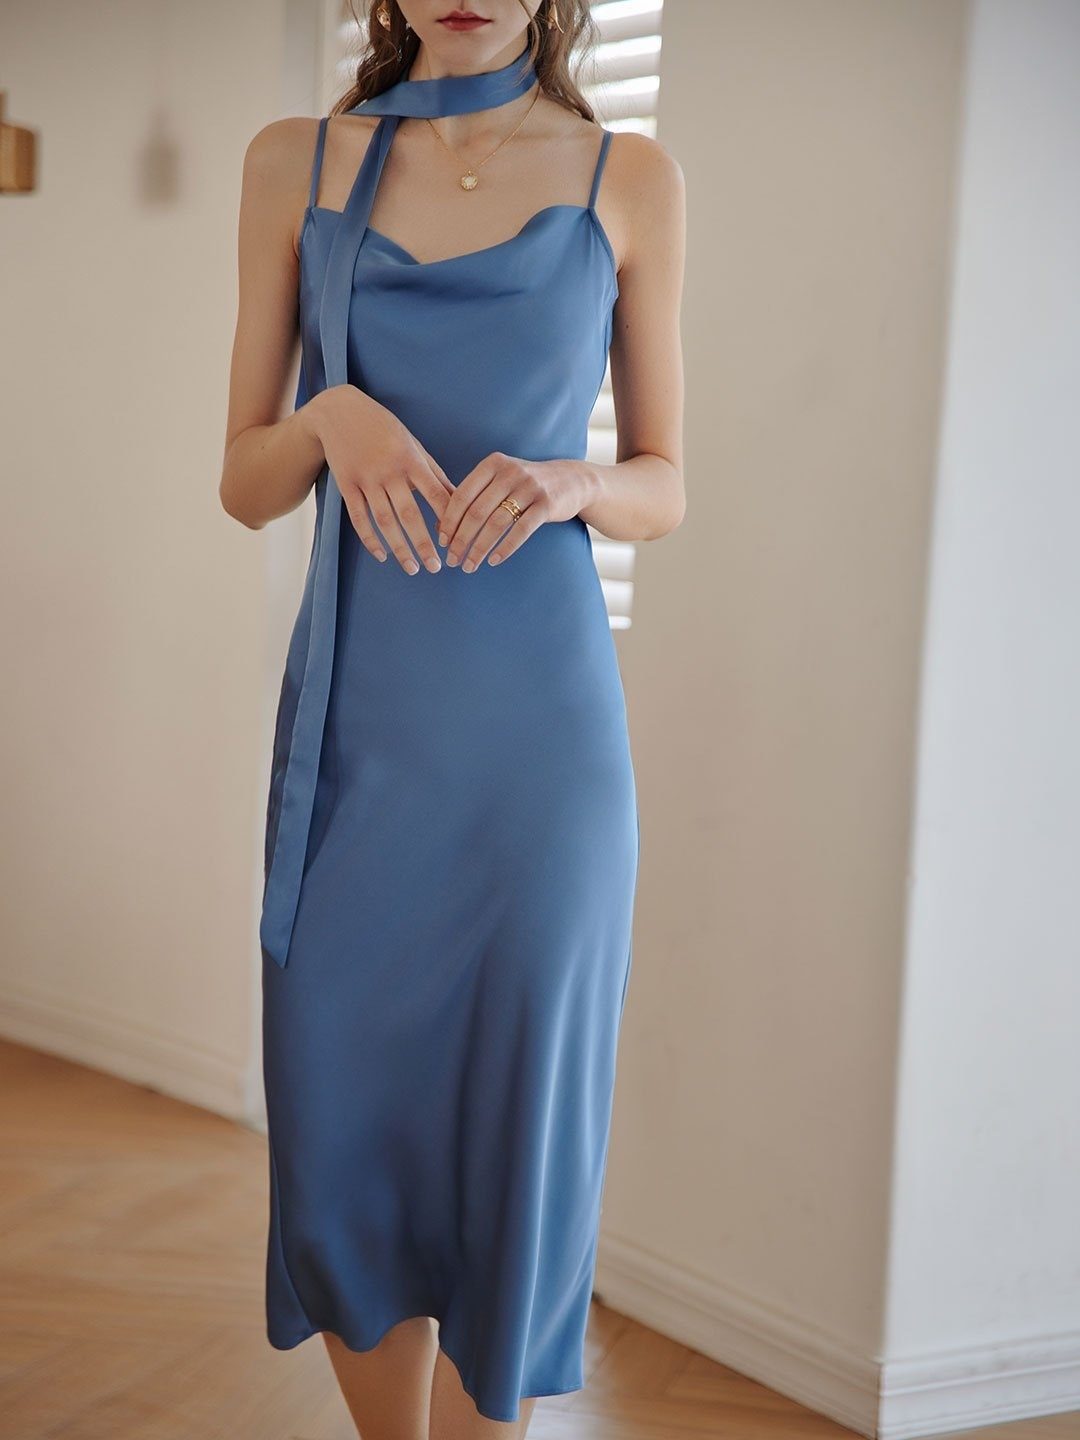 the blue satin dress with a thin scarf detail